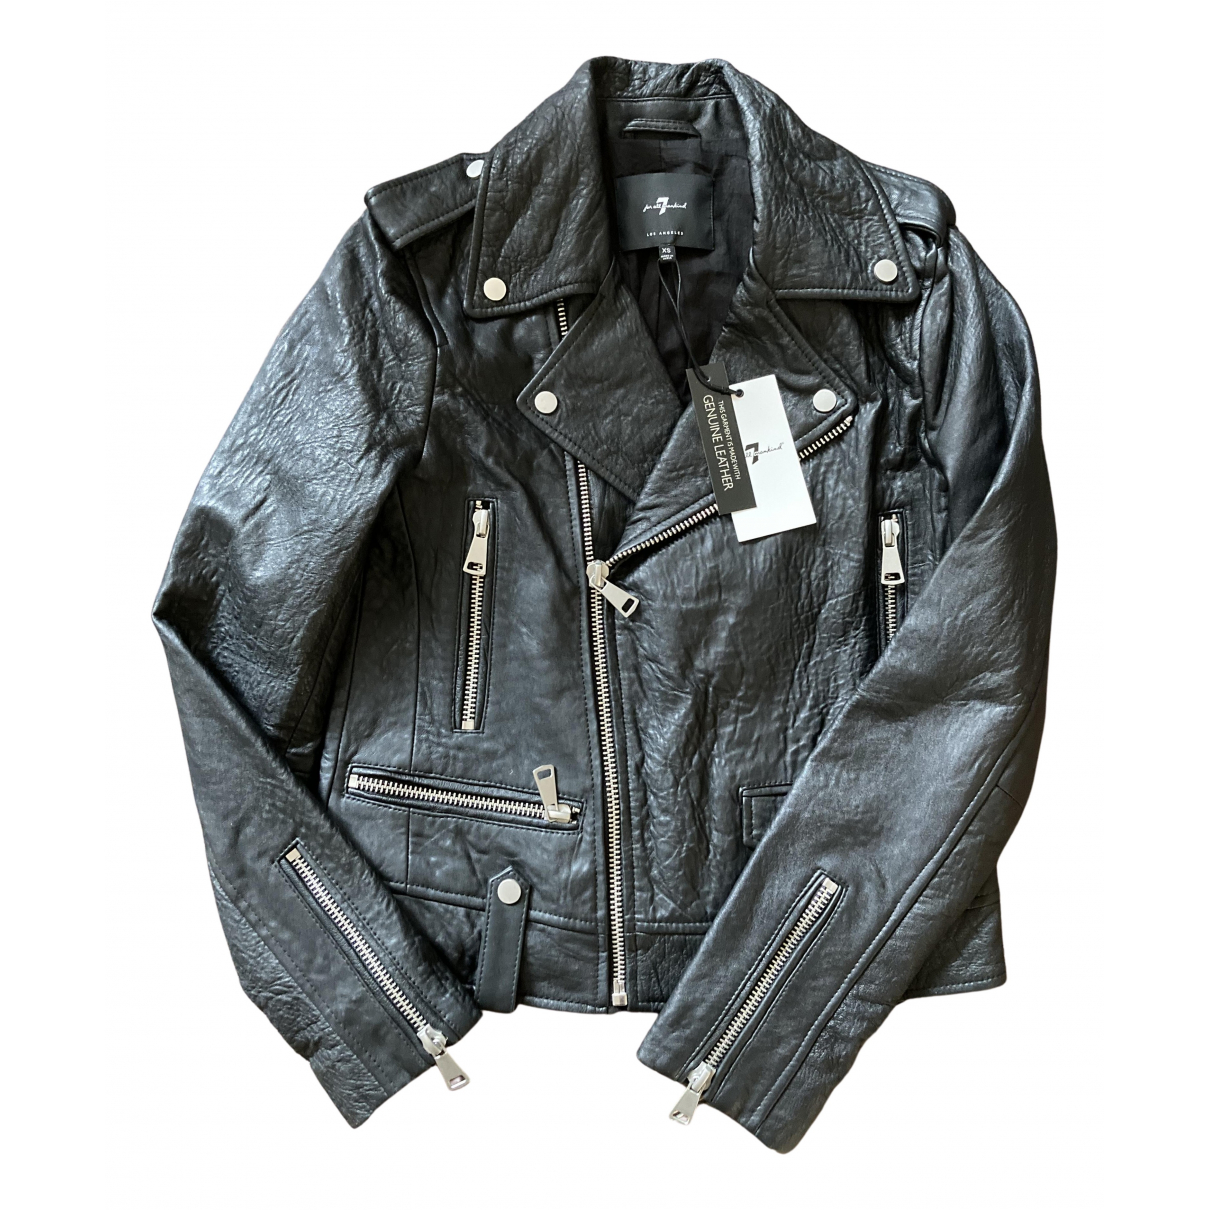 7 For All Mankind N Black Leather Leather jacket for Women XS International